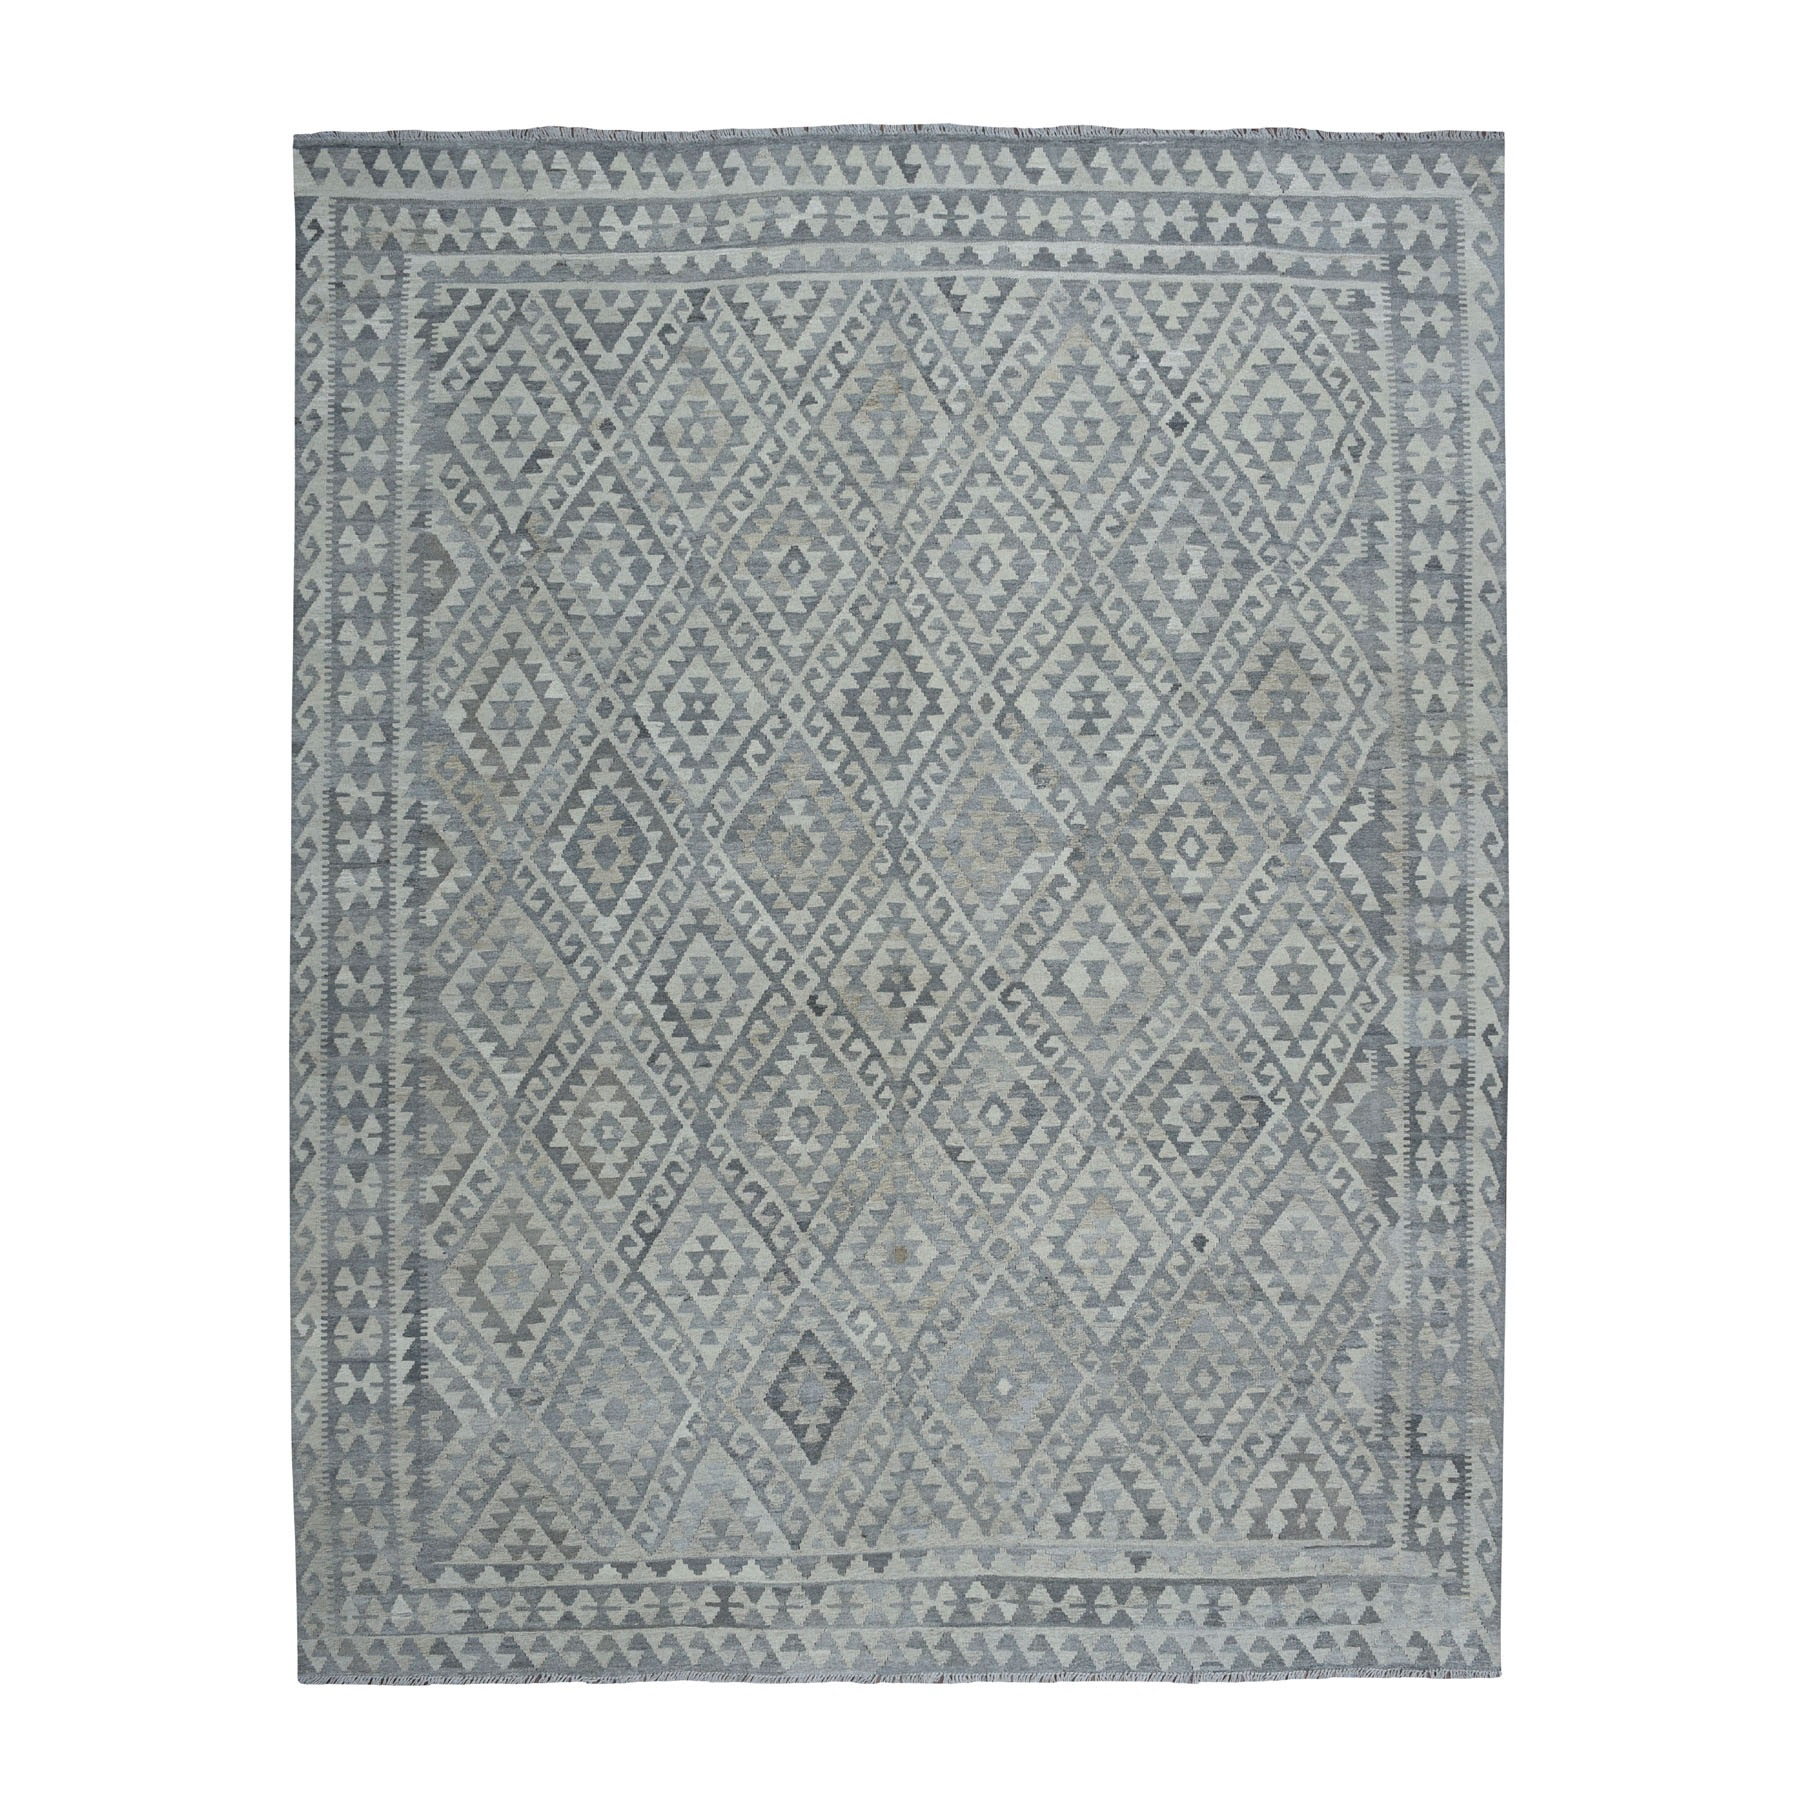 """8'6""""x10'2"""" Undyed Natural Wool Afghan Kilim Reversible Hand Woven Oriental Rug"""